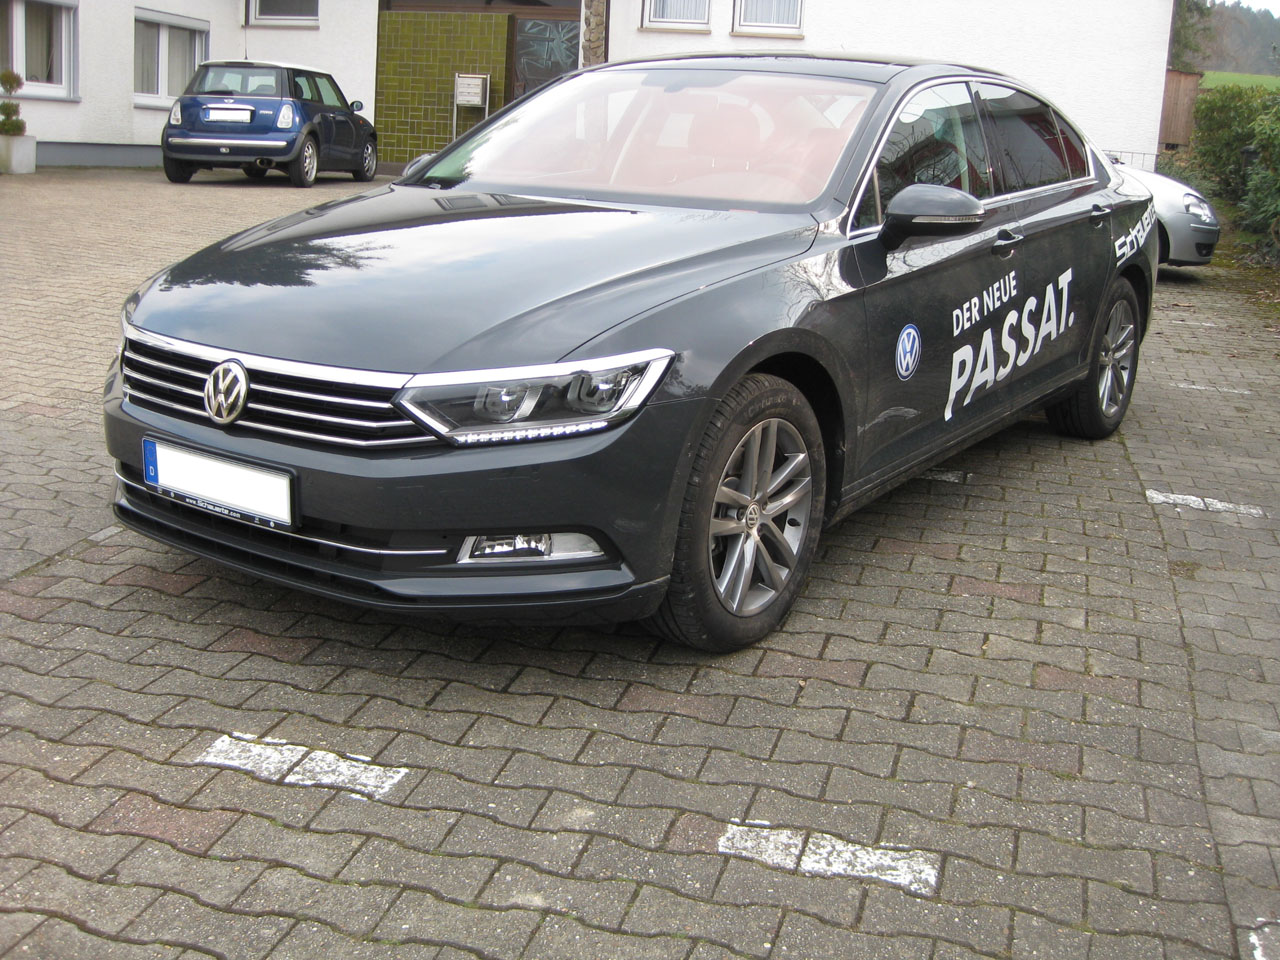 vw passat 2015 b8 autotest fahrbericht testbericht. Black Bedroom Furniture Sets. Home Design Ideas